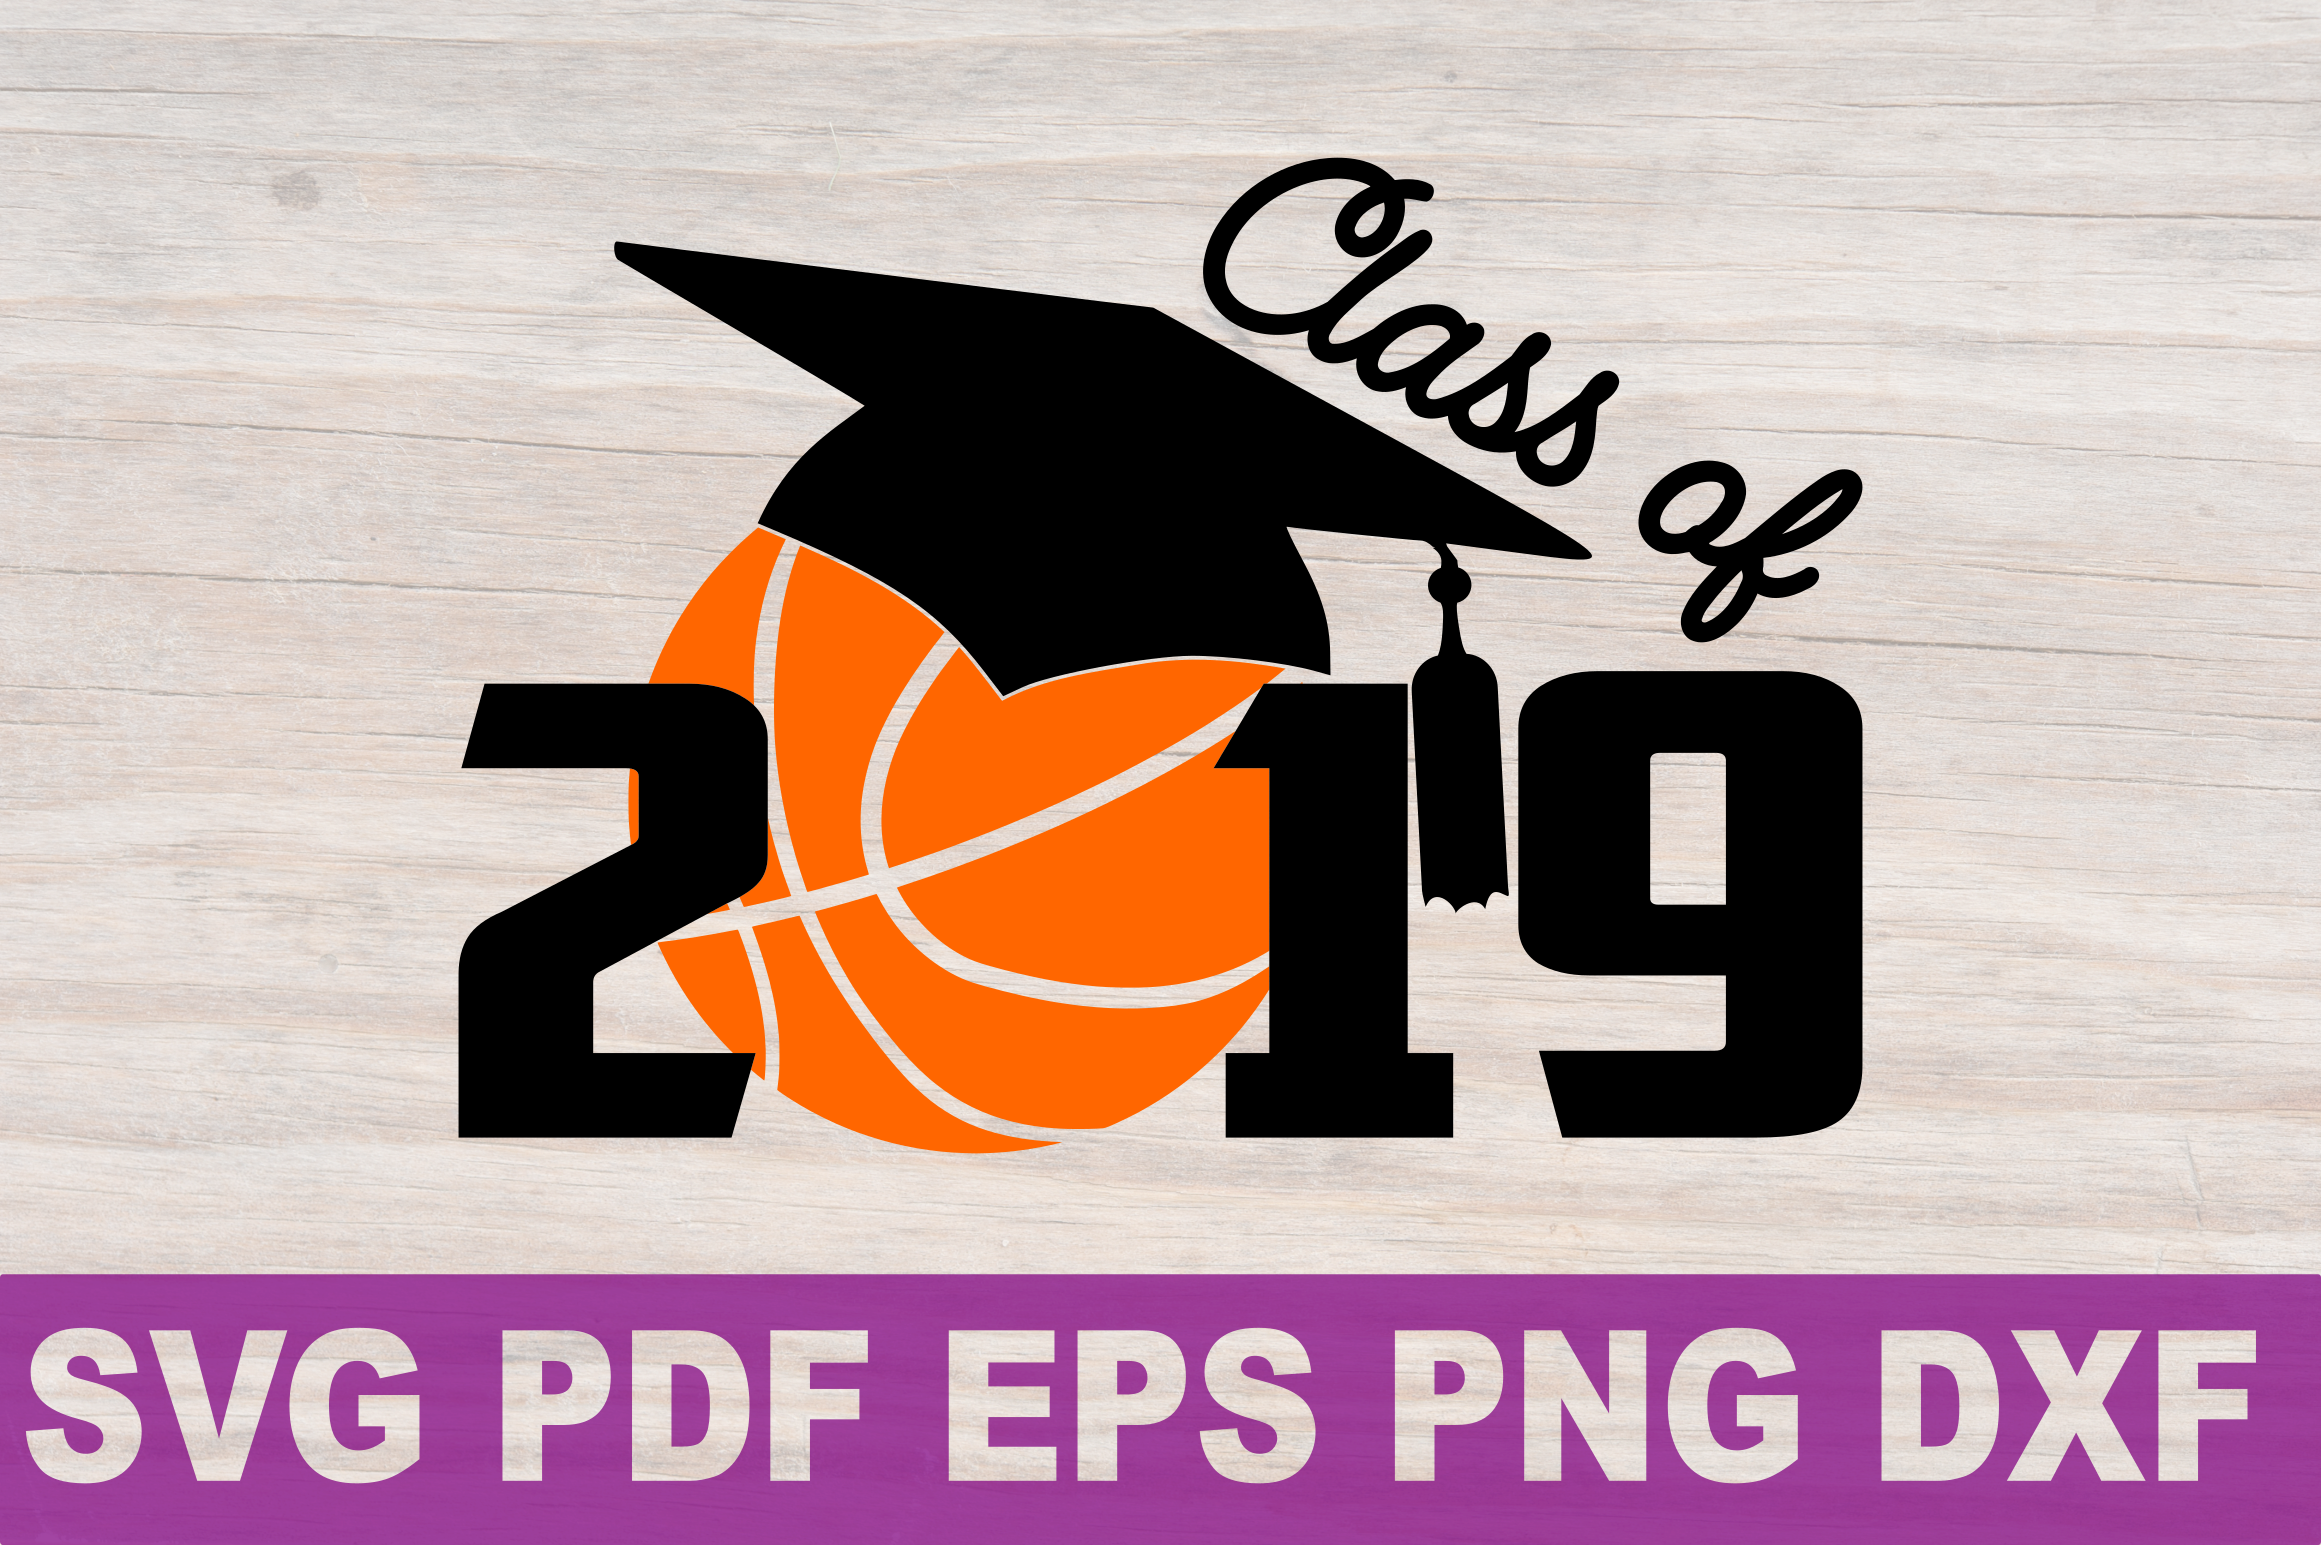 Svg class 2019. Basketball senior gift shirt